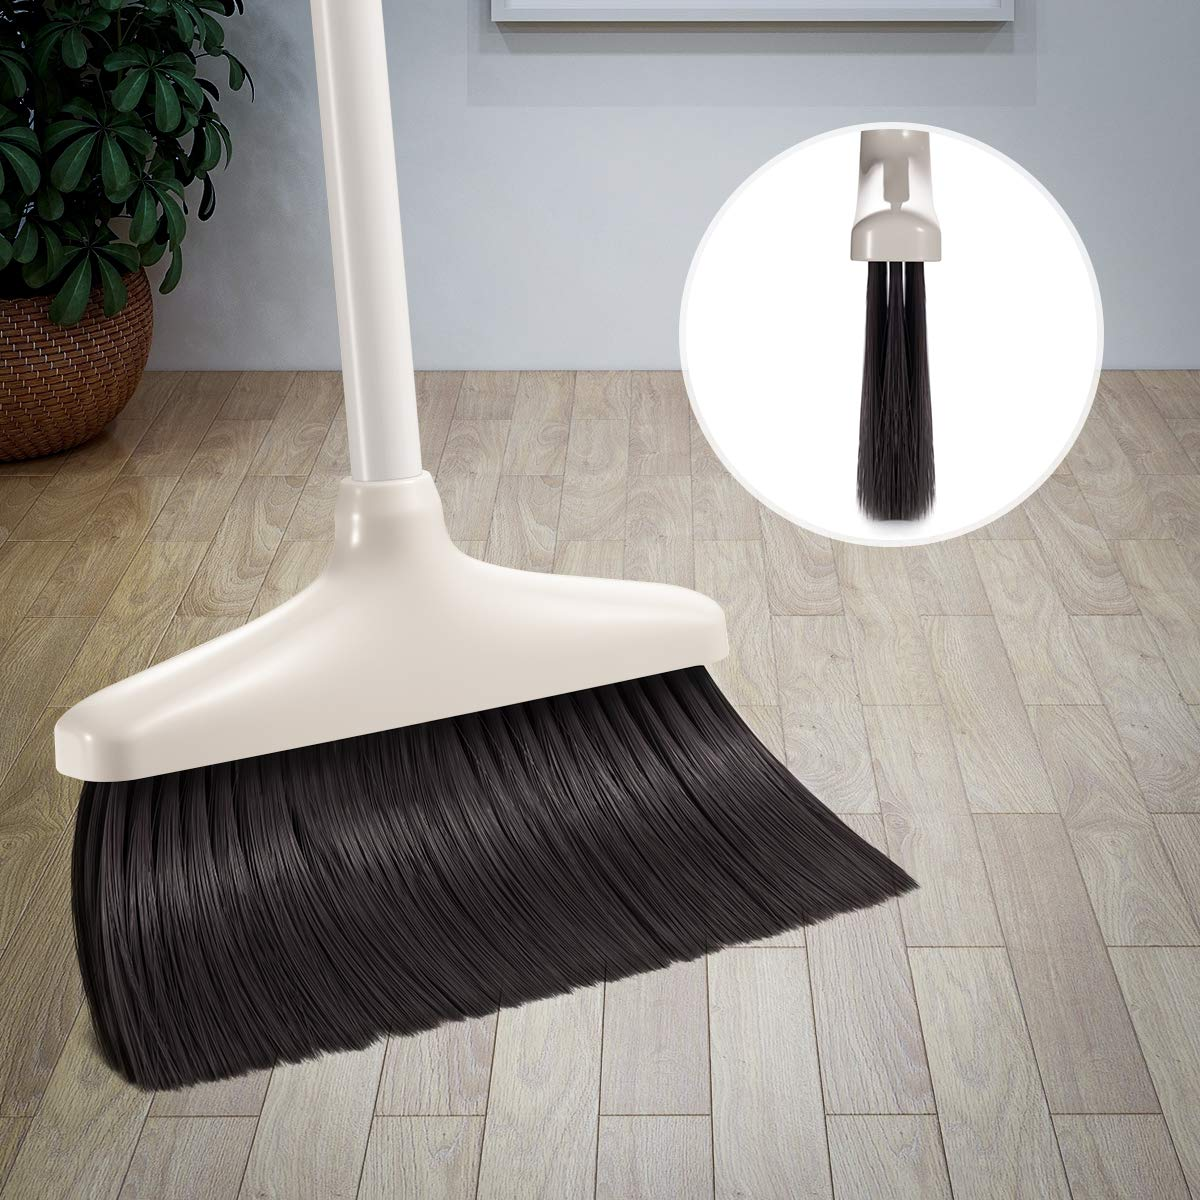 Broom and Dustpan Set, CQT Dust Pan and Broom with Long Handle for Home Kitchen Industry Lobby Floor Sweeping Upright Stand Up Dustpan Cleans Broom Combo by CQT (Image #3)